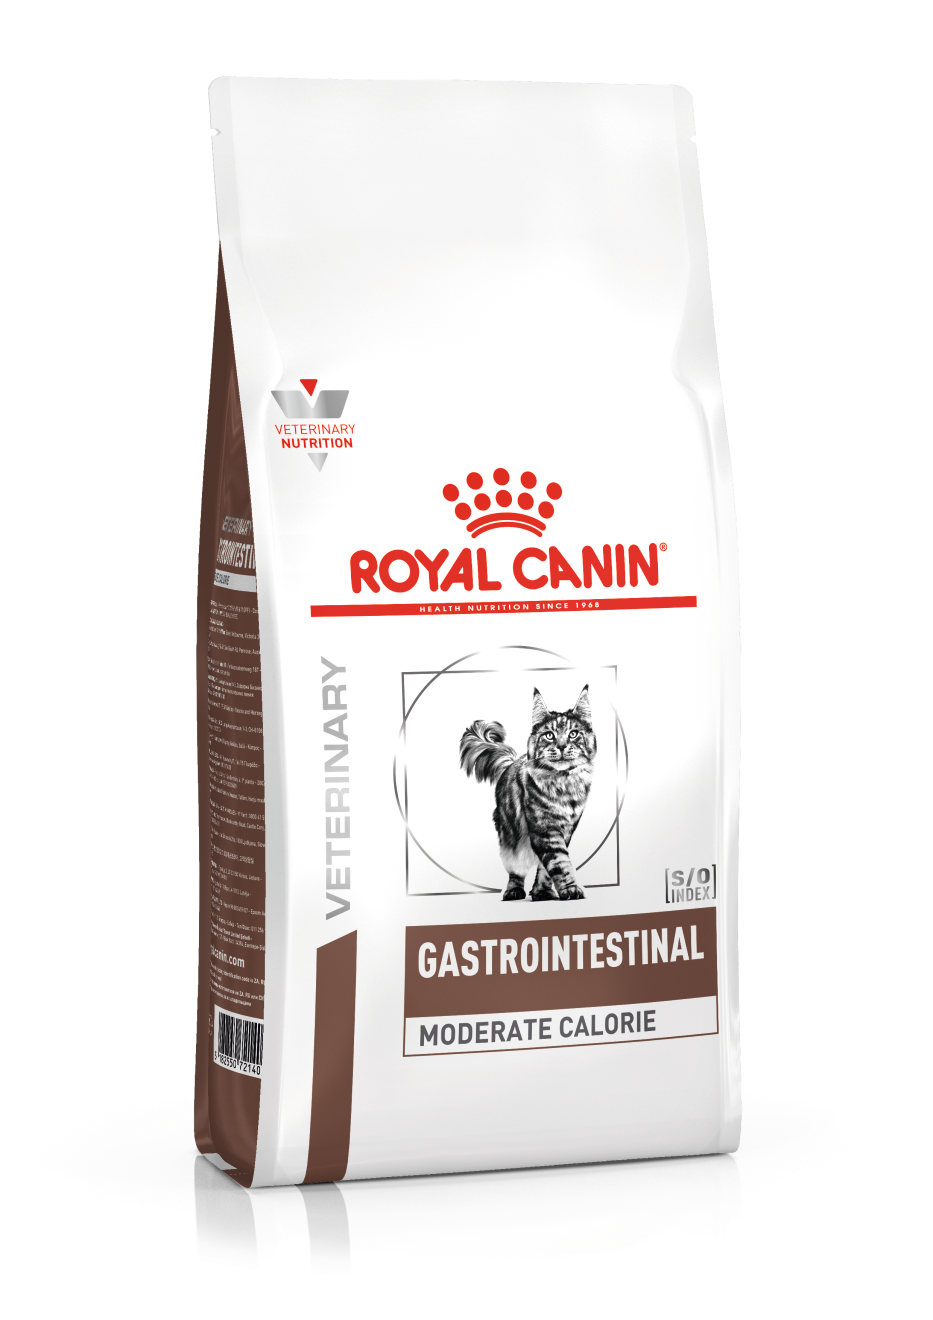 Royal Canin Gastrointestinal Moderate Calorie 4 kg (Katze)